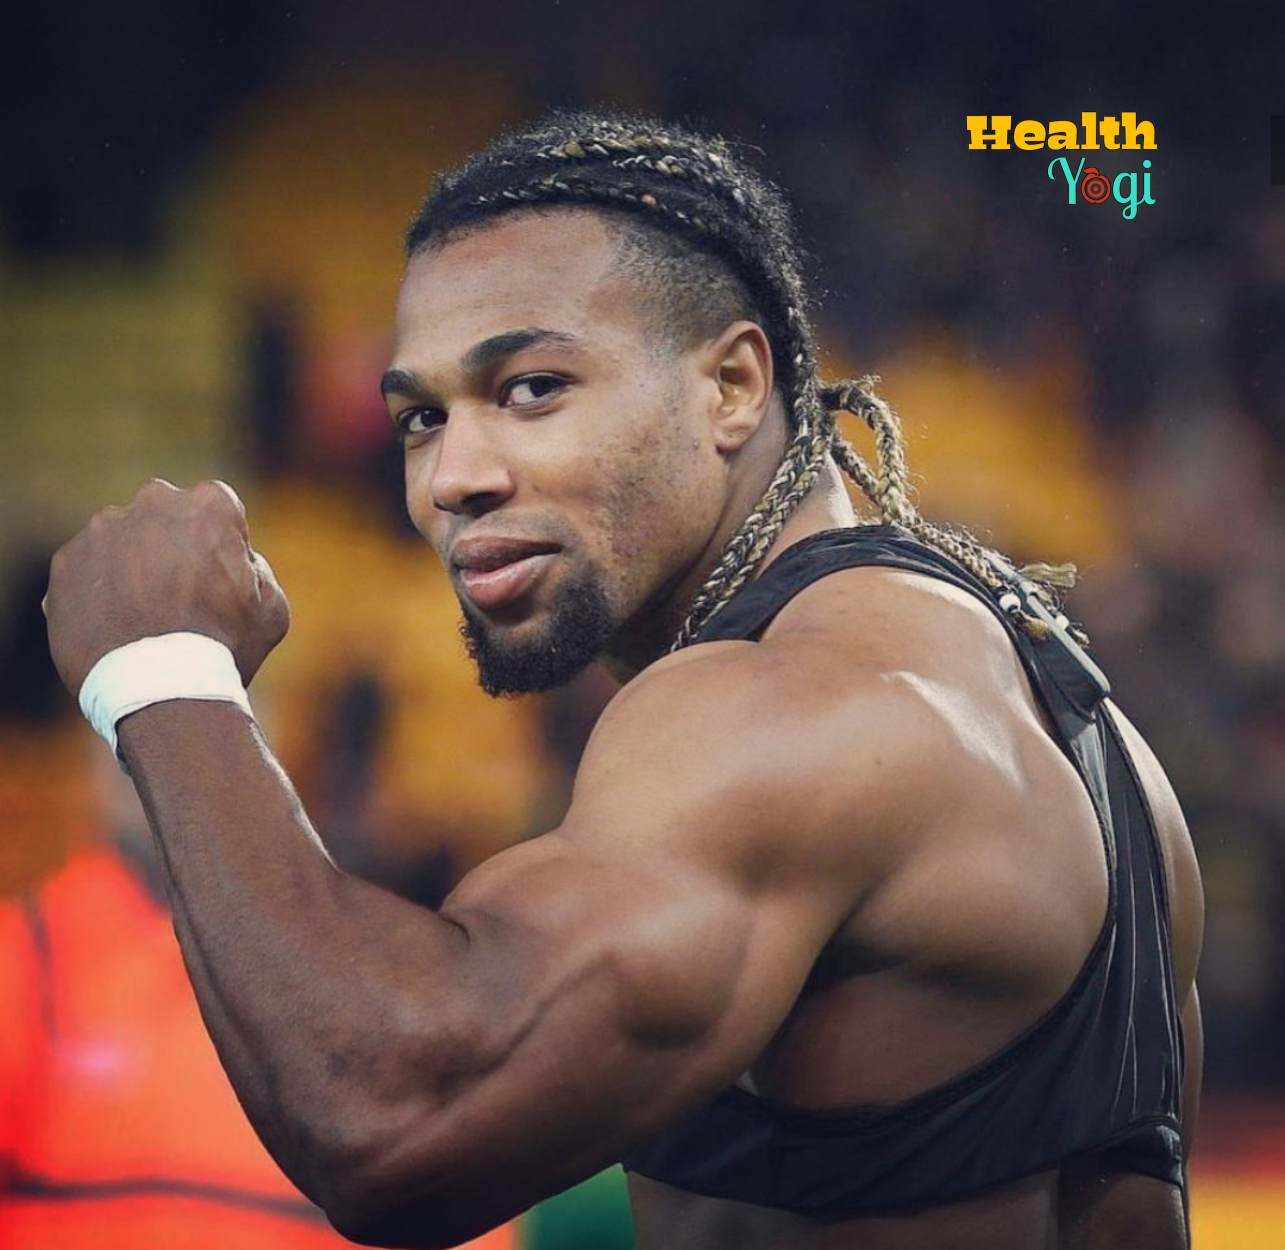 Adama Traore Workout Routine And Diet Plan Age Height Body Measurements 2020 Getkuls